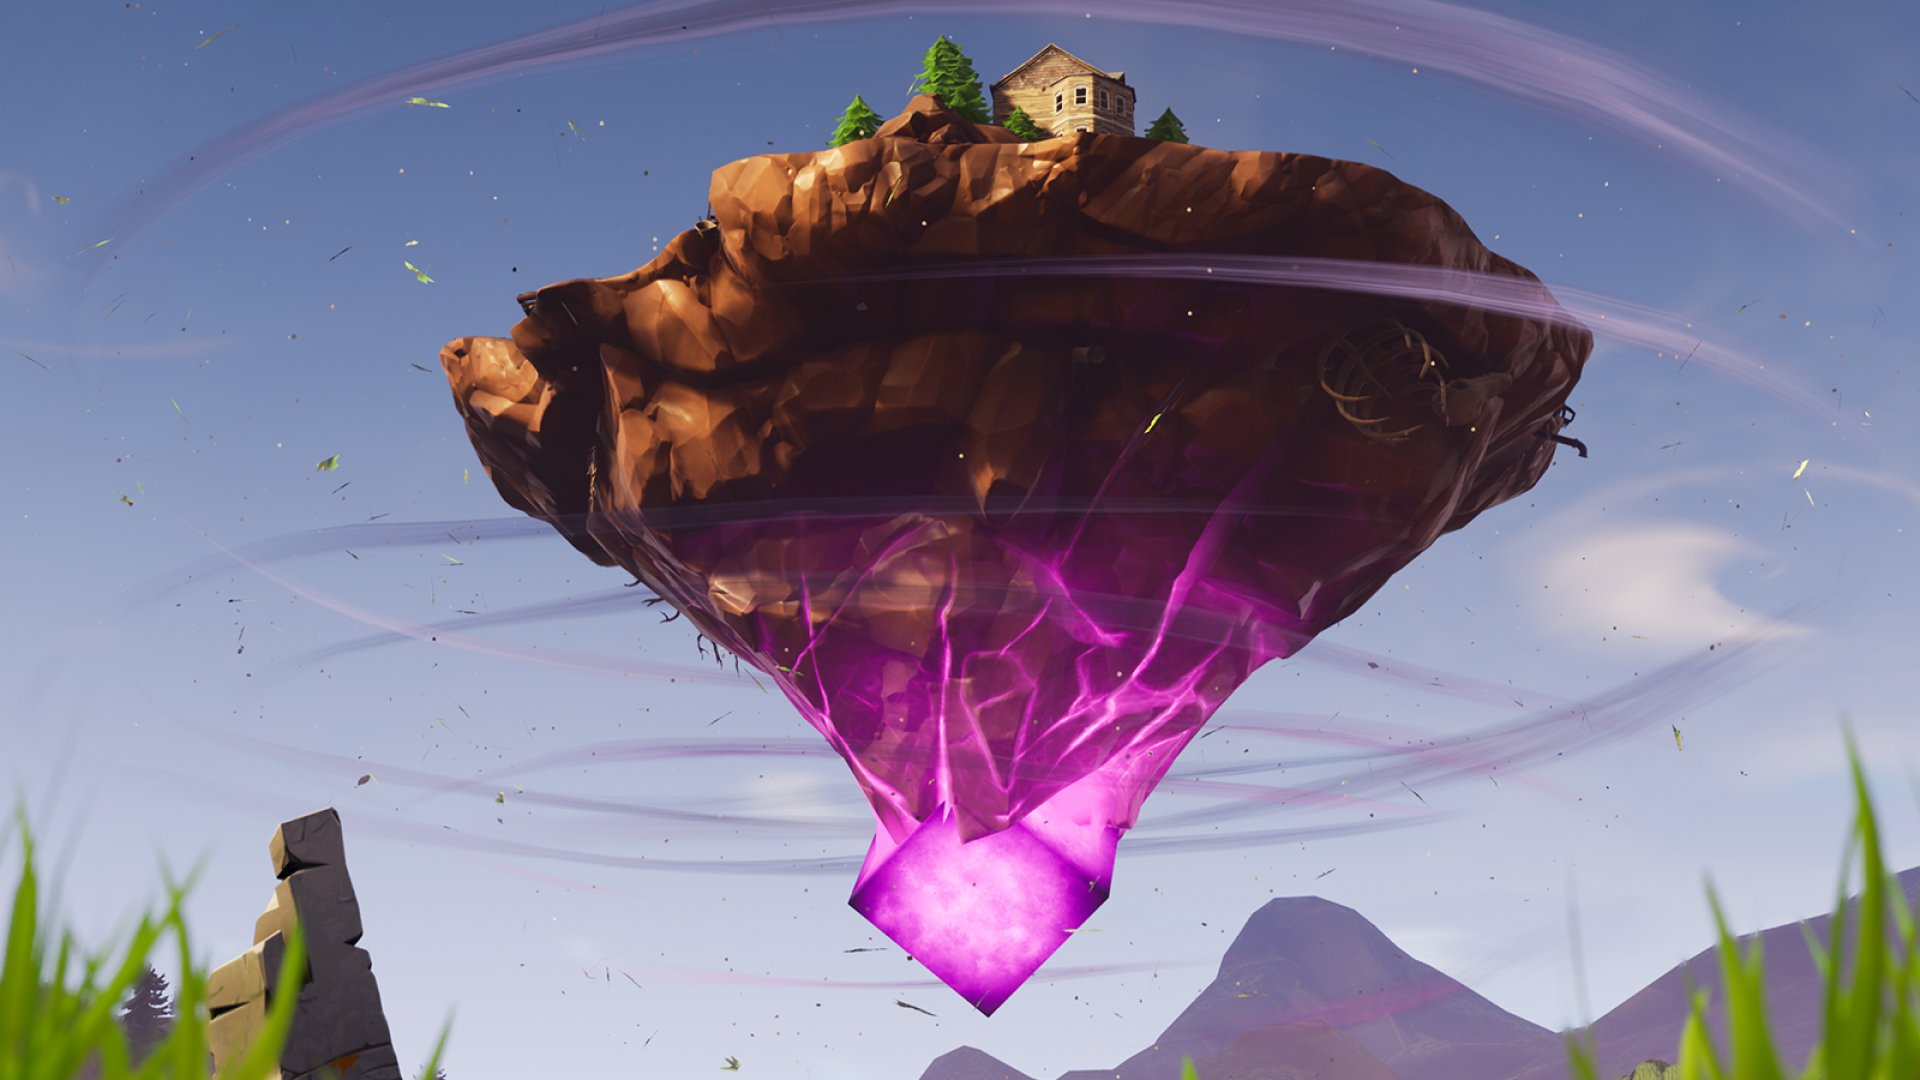 A still of the floating island from Epic Games' hugely popular Fortnite.